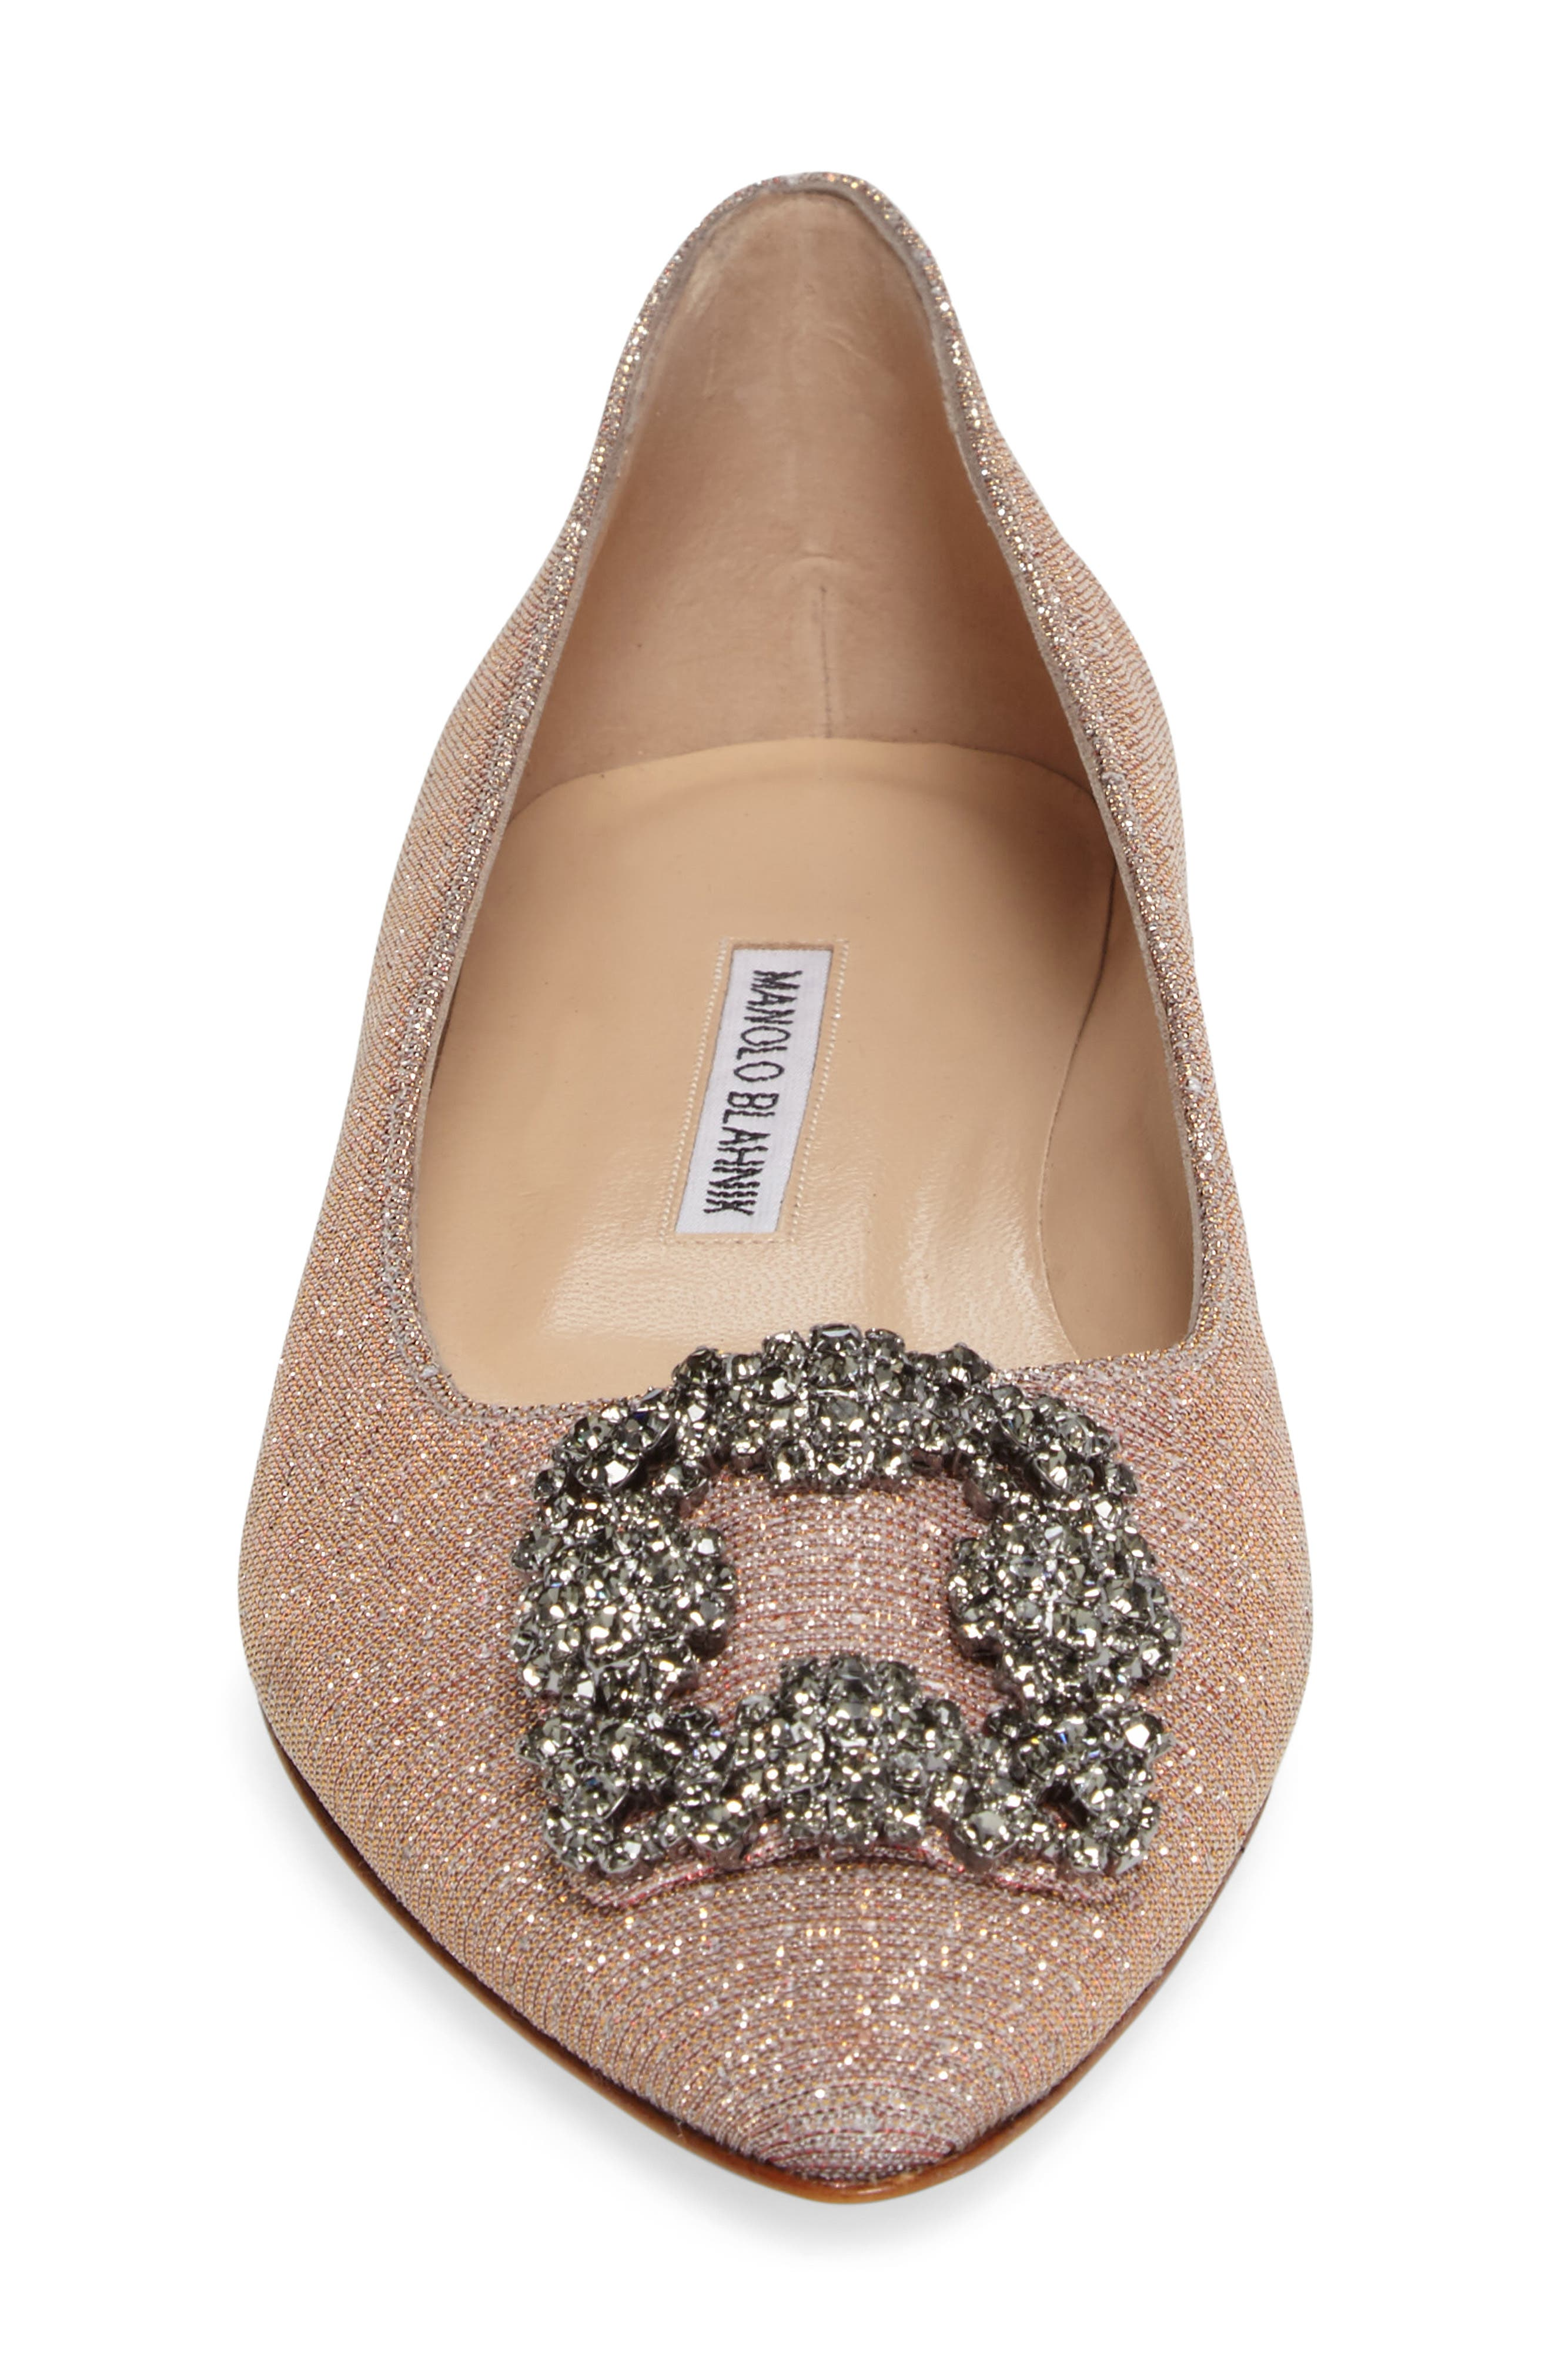 MANOLO BLAHNIK,                             'Hangisi' Jeweled Pointy Toe Flat,                             Alternate thumbnail 4, color,                             CHAMPAGNE FABRIC